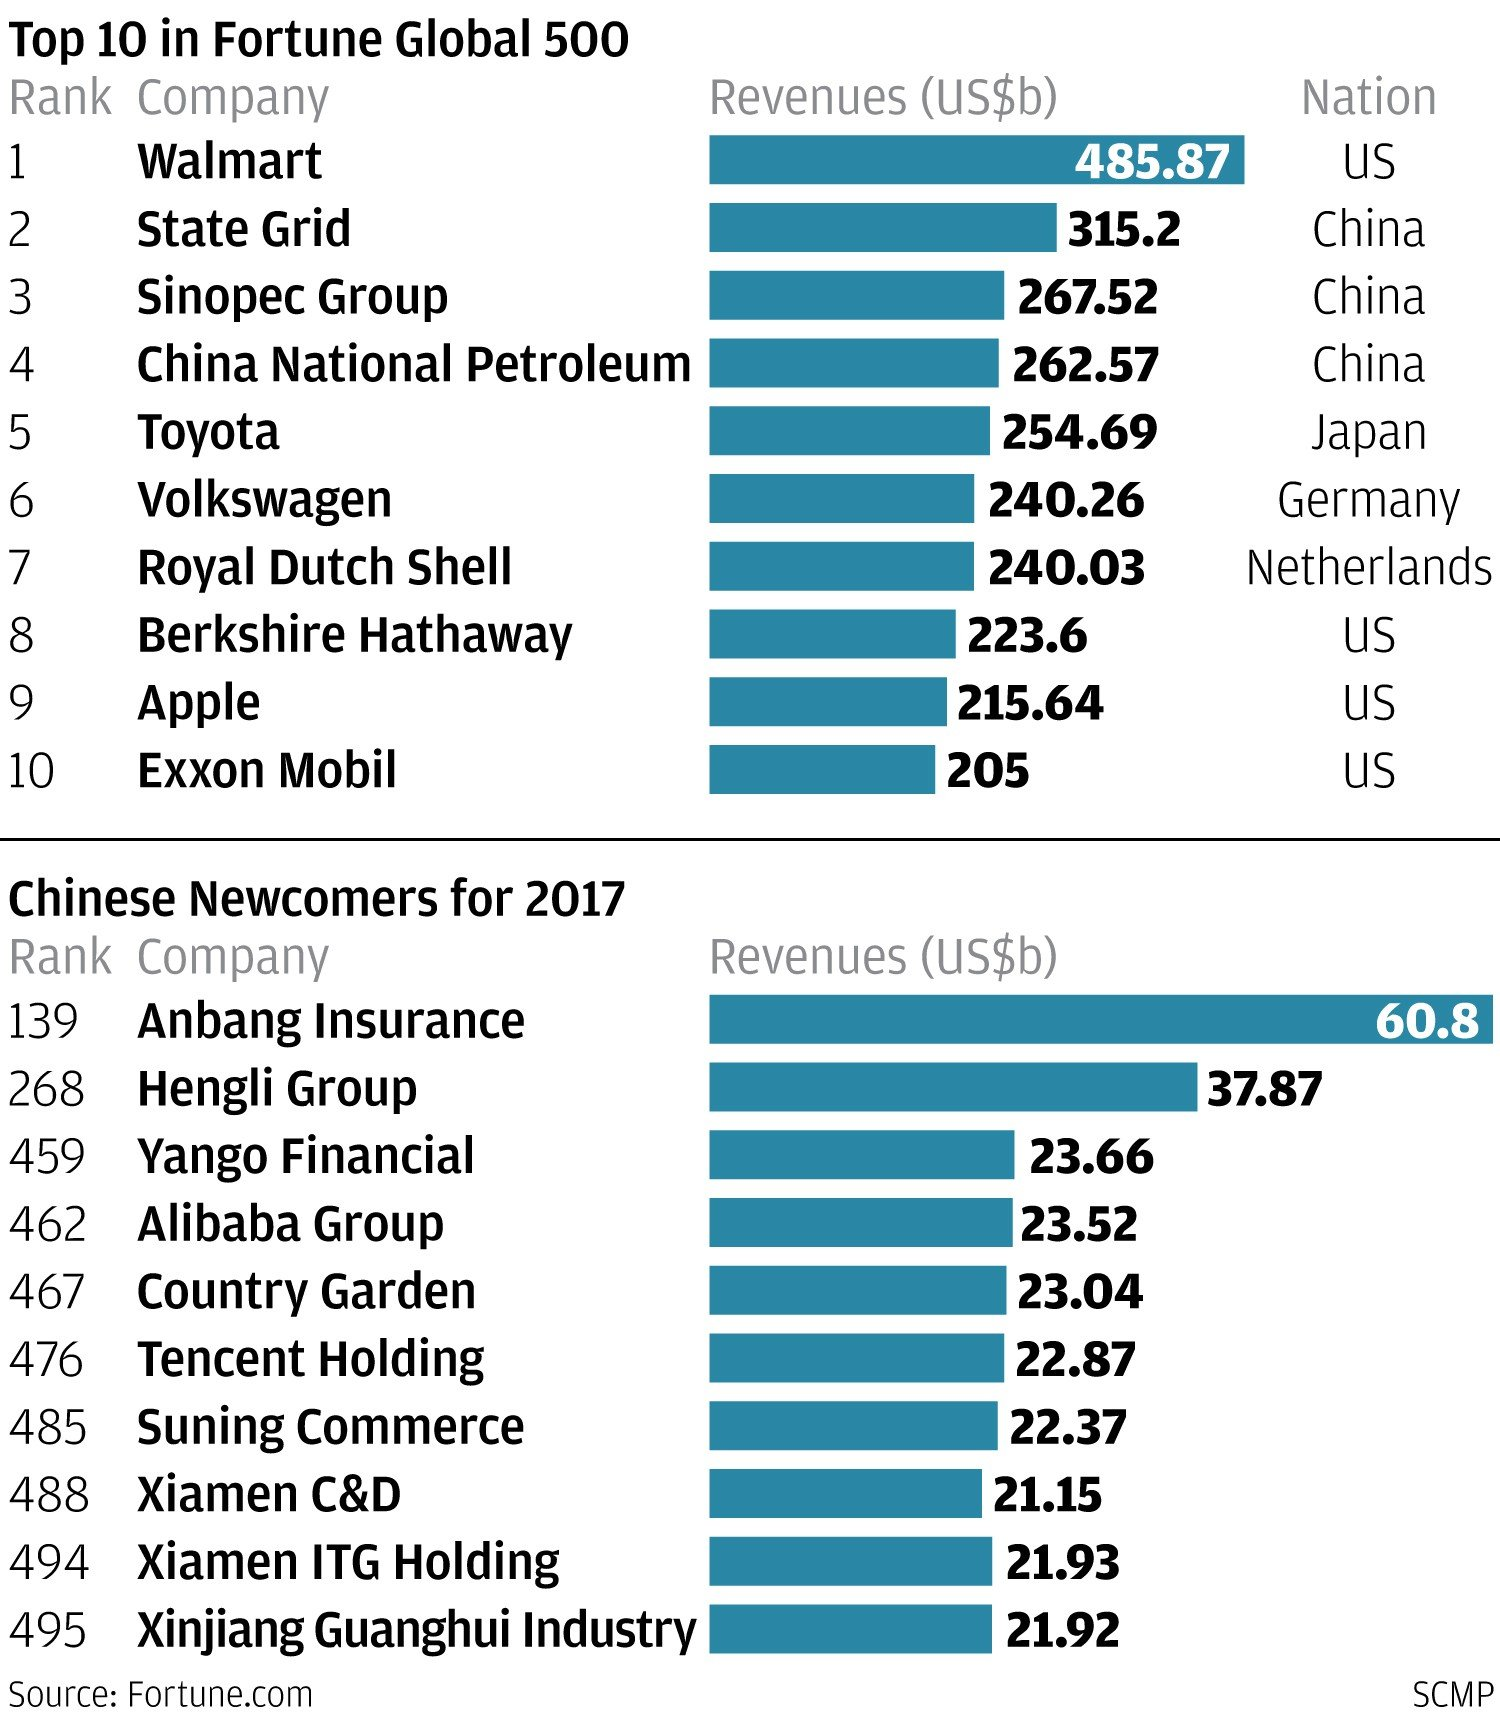 A list of Chinese manufacturing companies. Each manufacturing company on this list is from the People's Republic of China. Over the last several decades the Chinese government has encouraged smaller private enterprises to replace certain less profitable or inefficient state-owned enterprises.